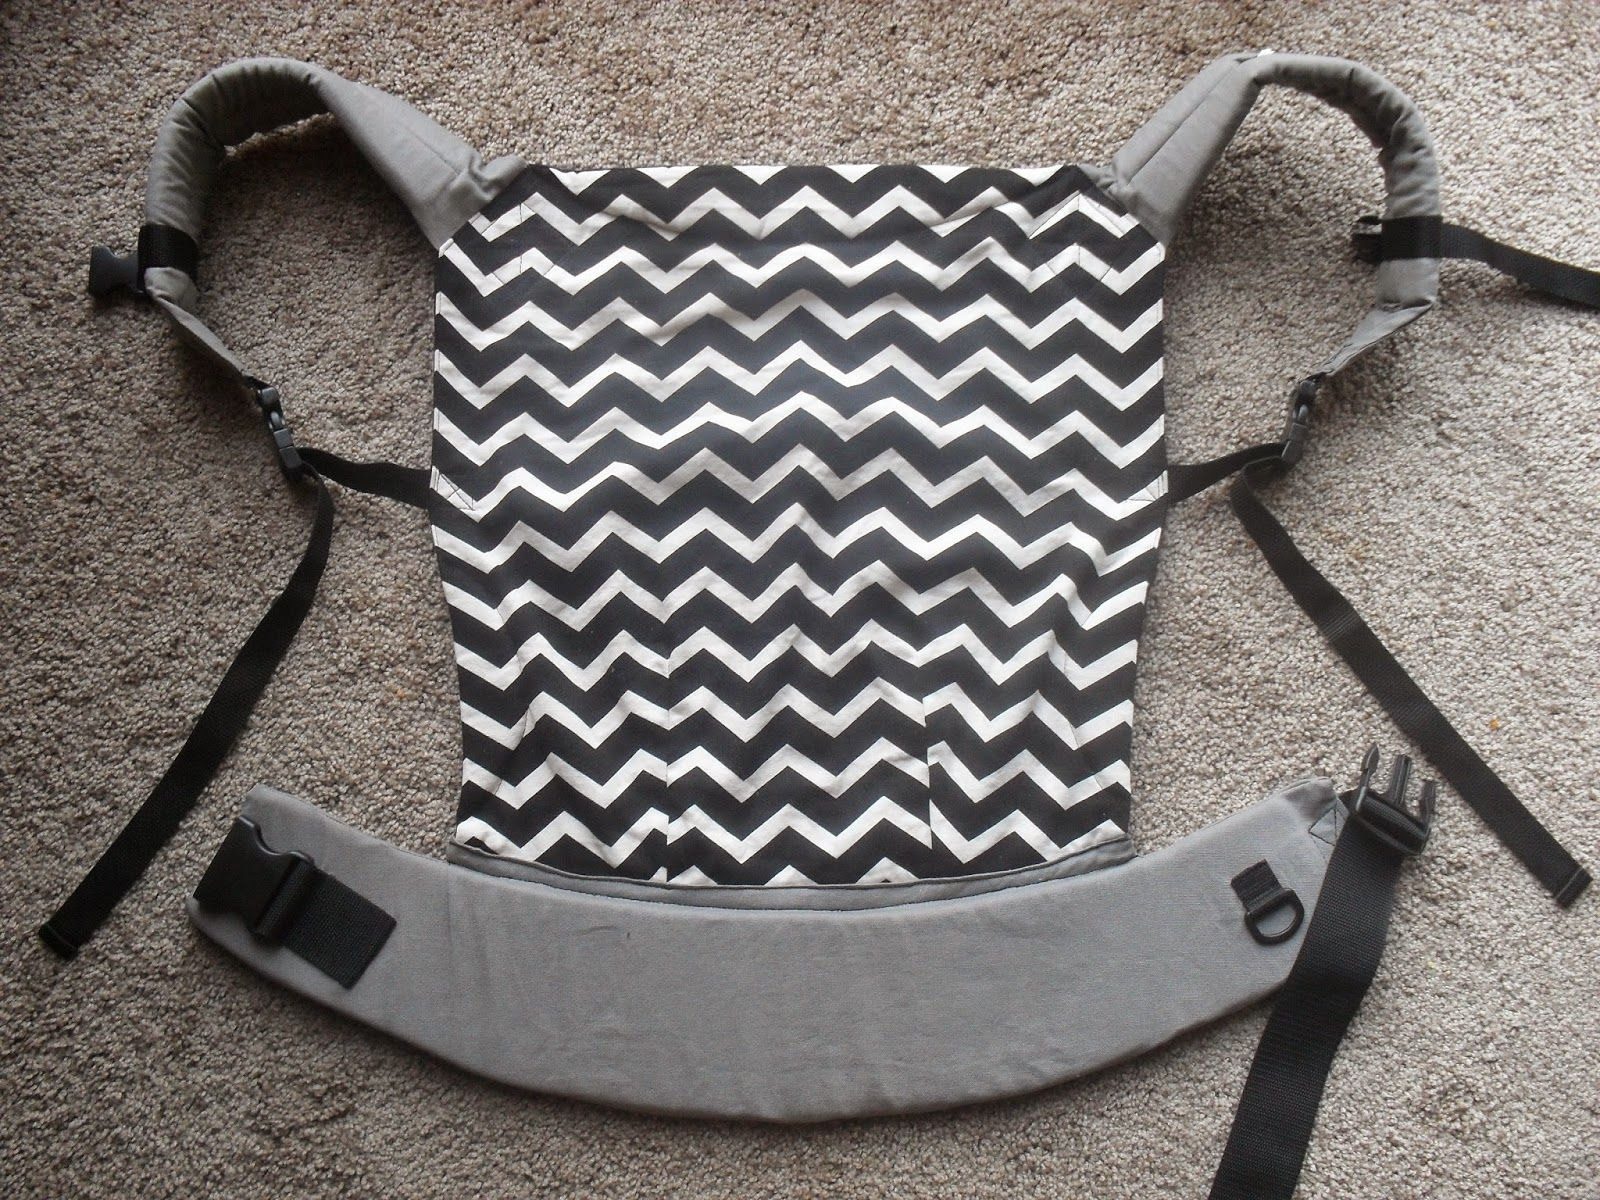 Toddler Ssc Pattern And Instructions Based Off Of The Ergo Baby